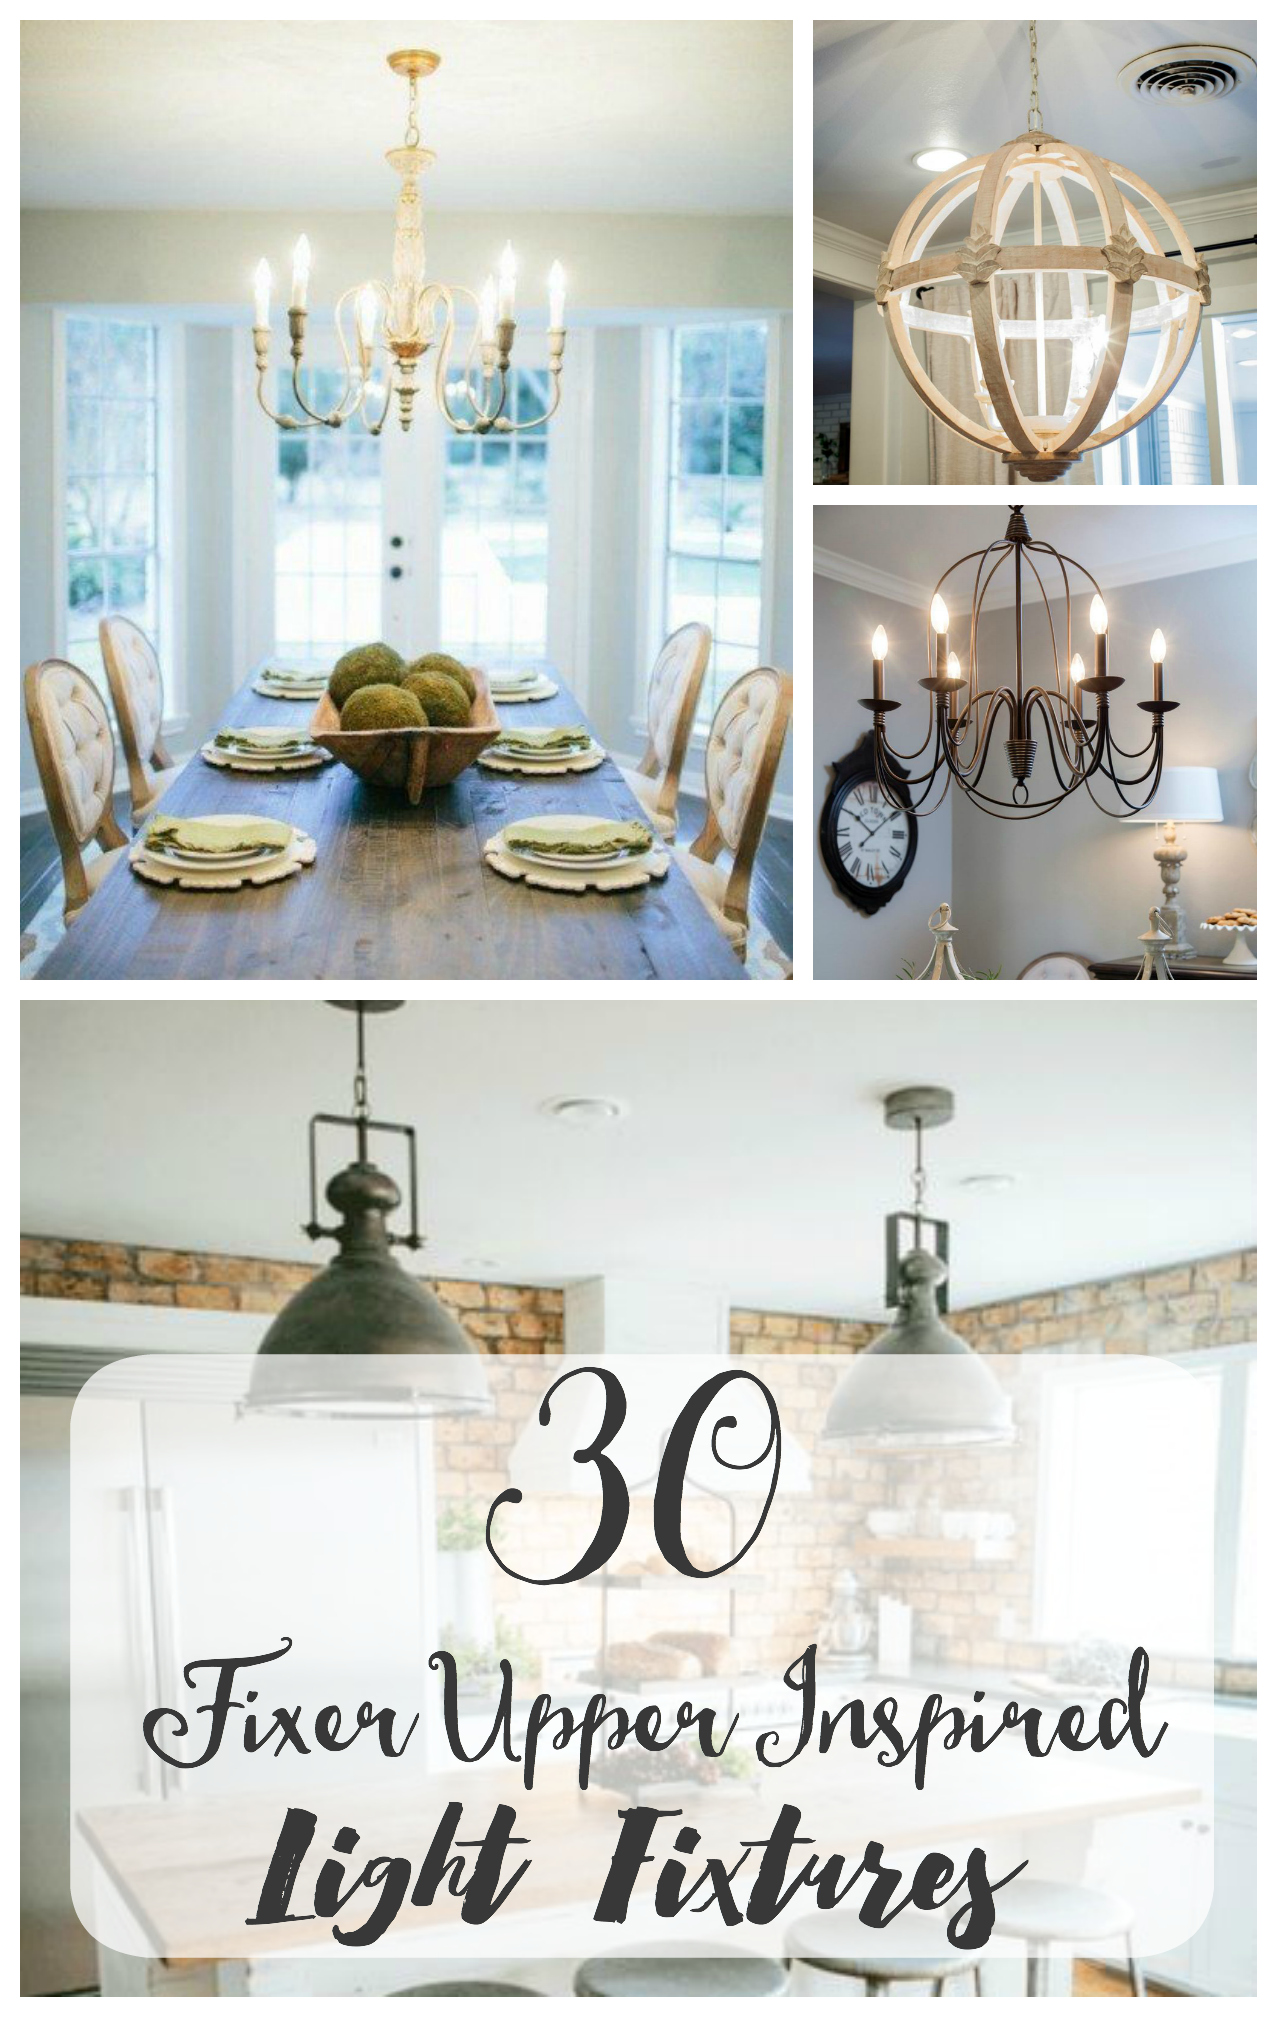 30 Fixer Upper inspired light fixtures